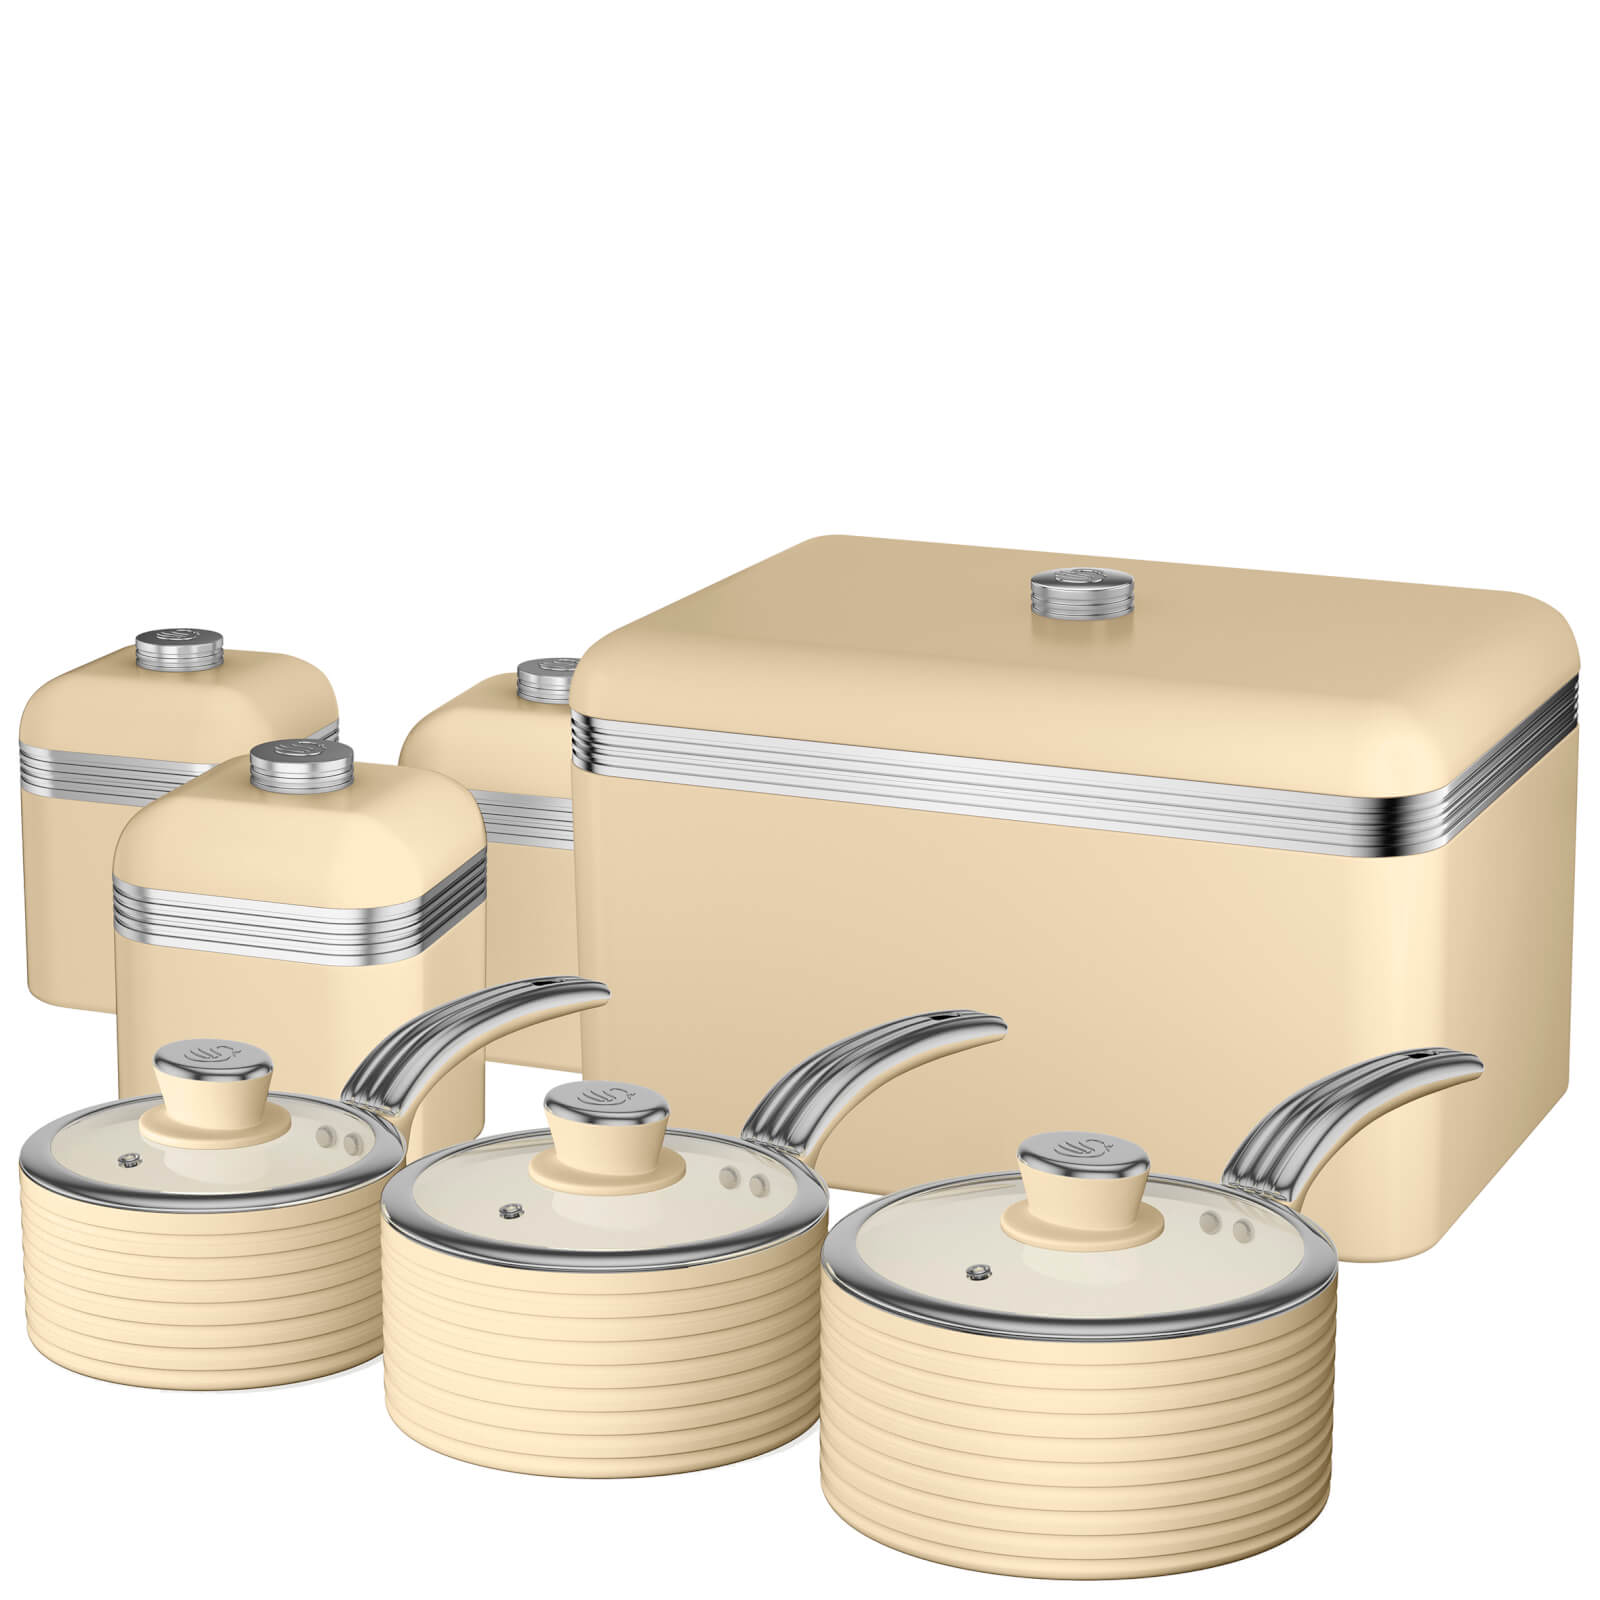 b9bd00b2c412 Swan Retro Bread Bin, Set of 3 Canisters and 3 Piece Saucepan Set - Cream |  IWOOT